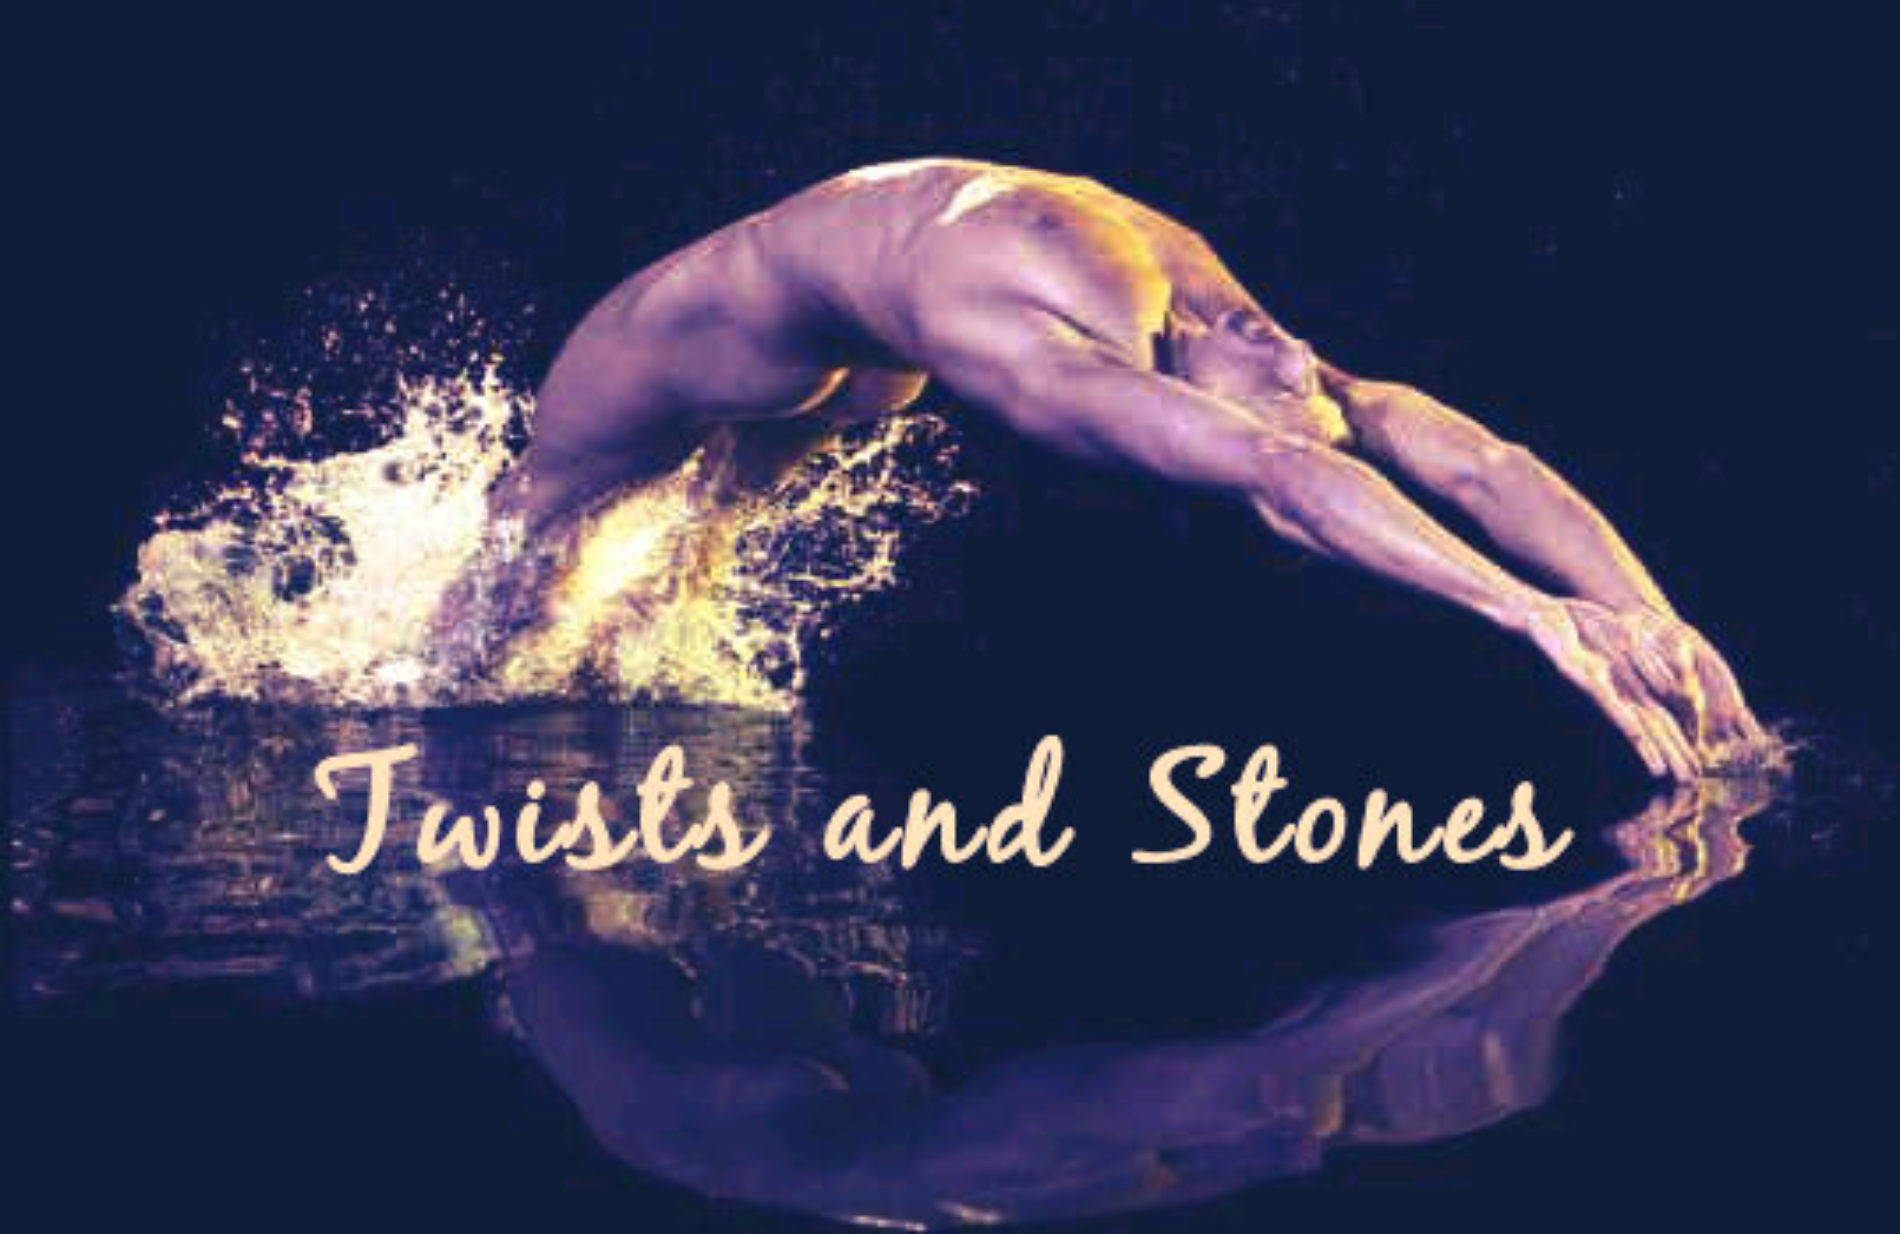 TWISTS AND STONES (Episode 4)